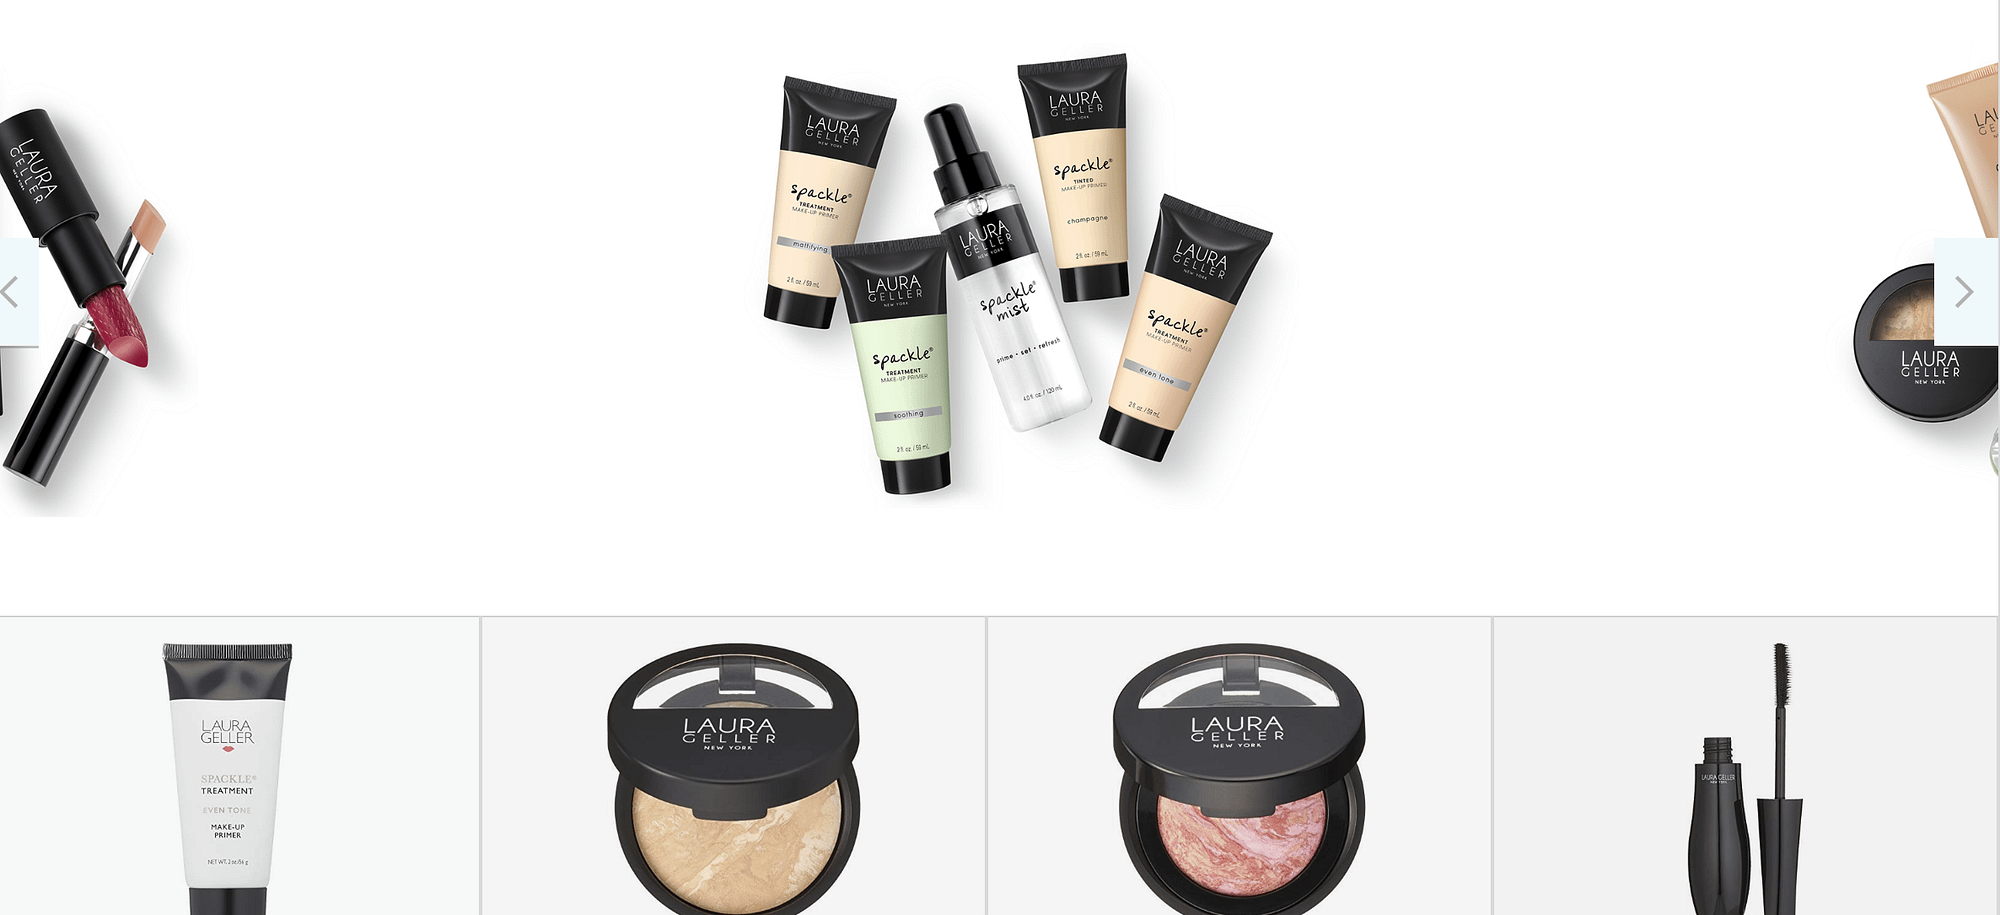 laura geller beauty brand amazon